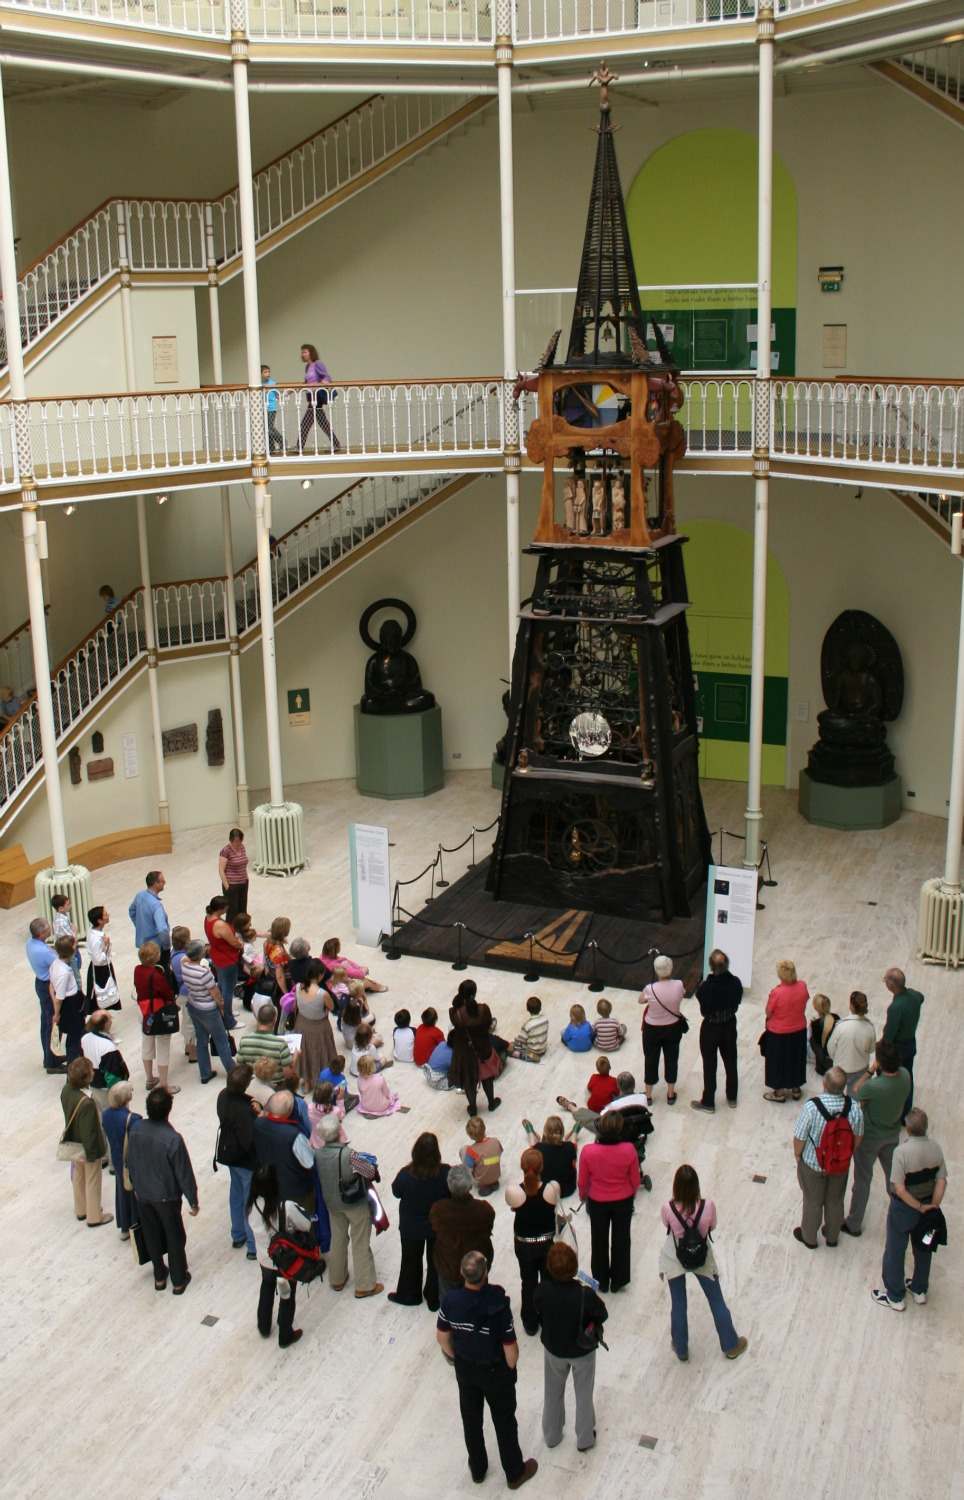 The Millennium Clock in the National Museum of Scotland always draws a crowd when it goes into action.